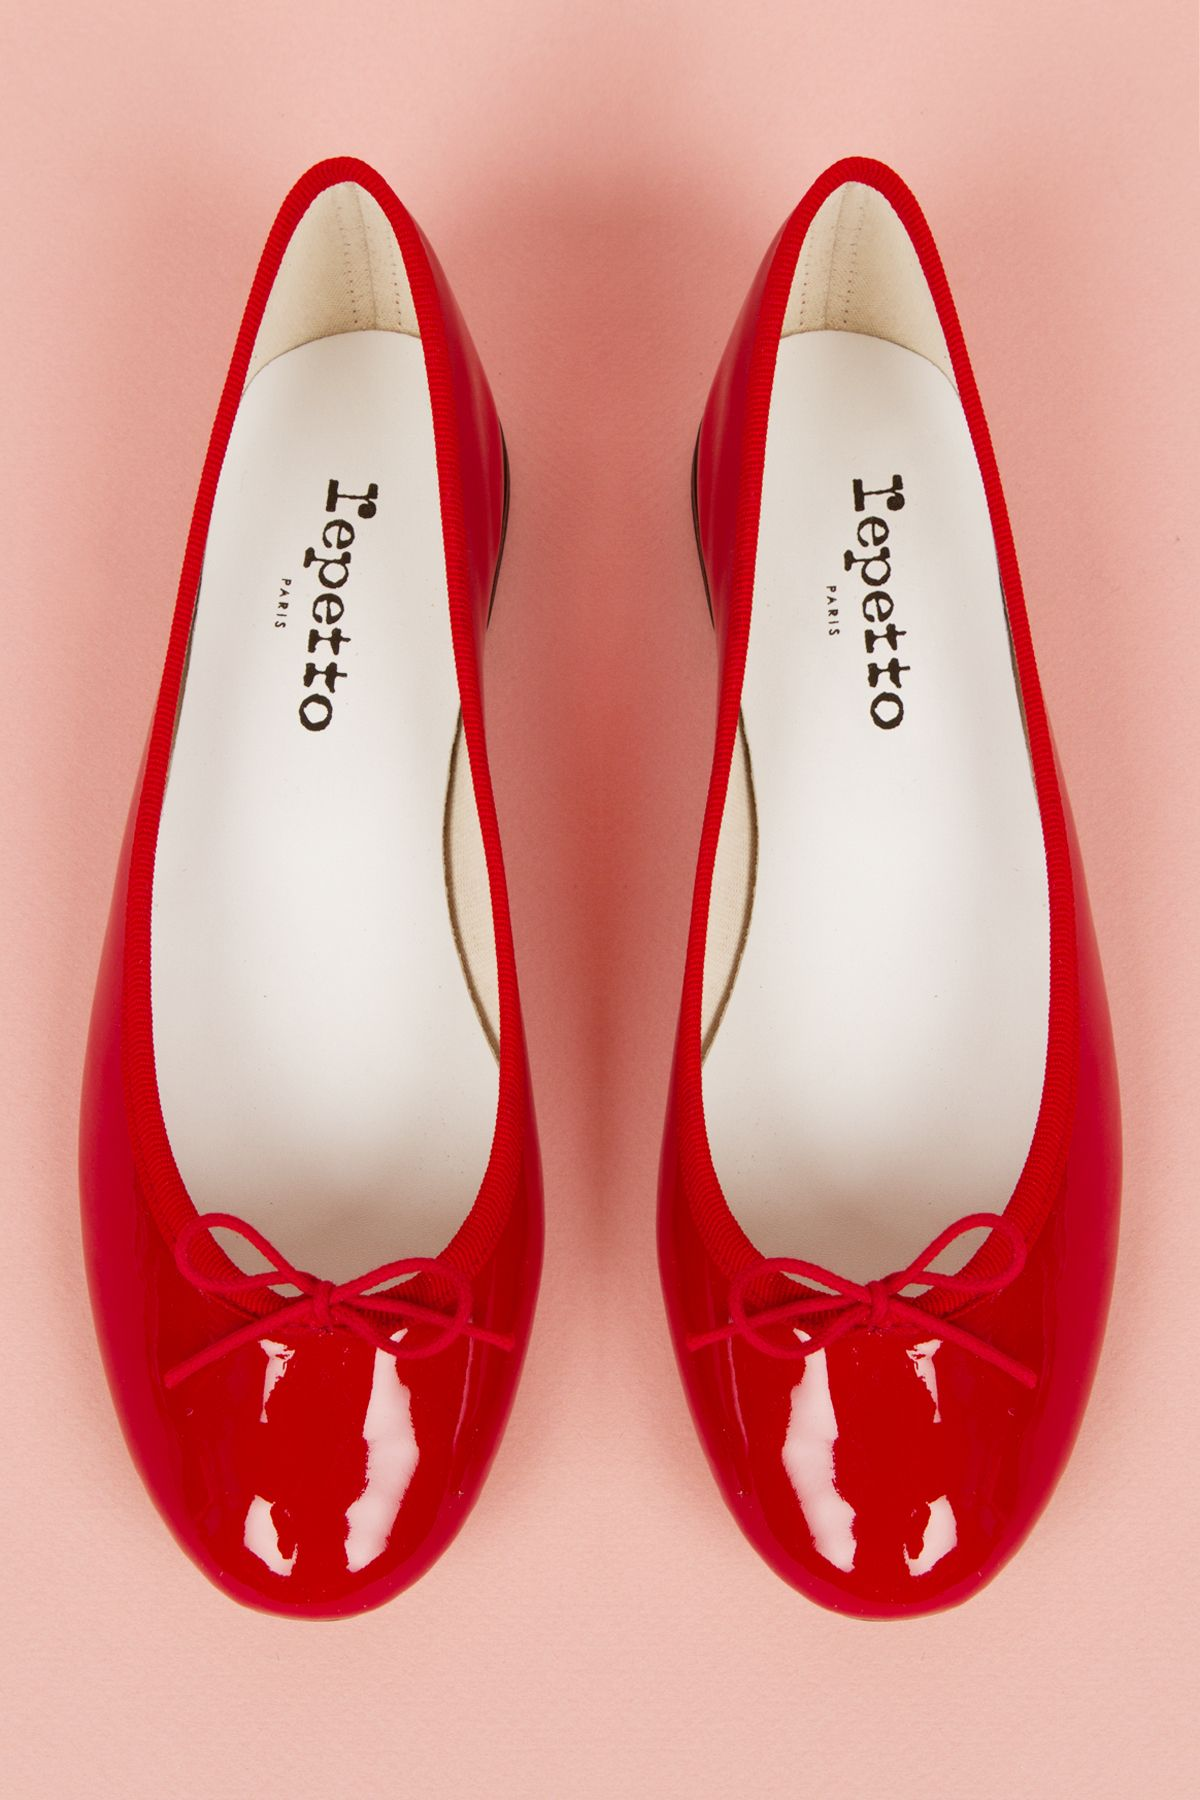 8b4948da7ddf Red Repetto flats | Shoes? Sure. in 2019 | Shoes, Fashion, Sock shoes